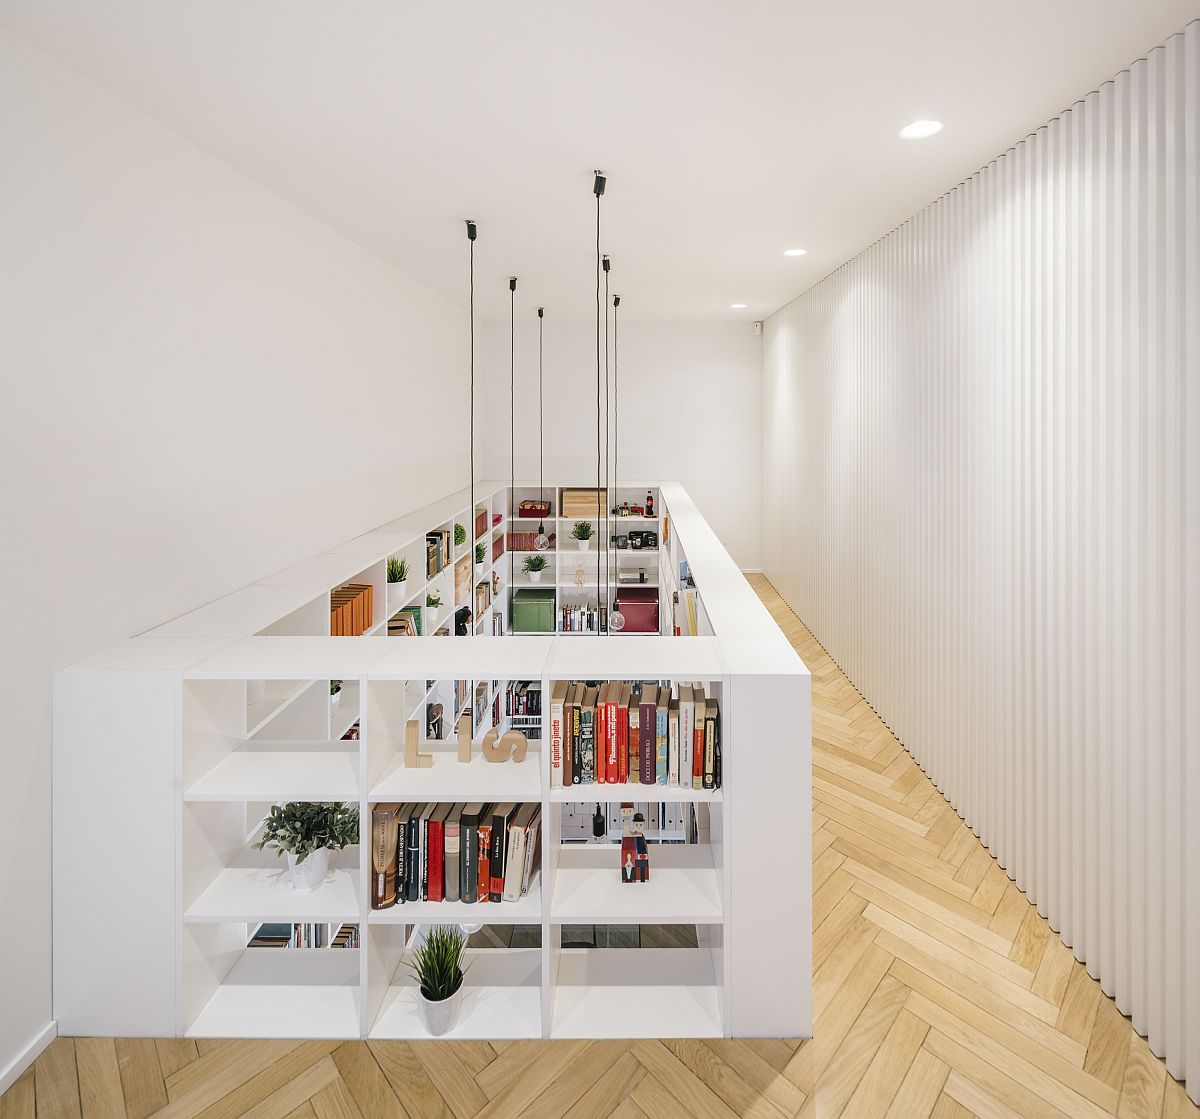 Dramatic-bookshelves-become-a-part-of-both-the-lower-and-upper-levels-of-the-house-44119